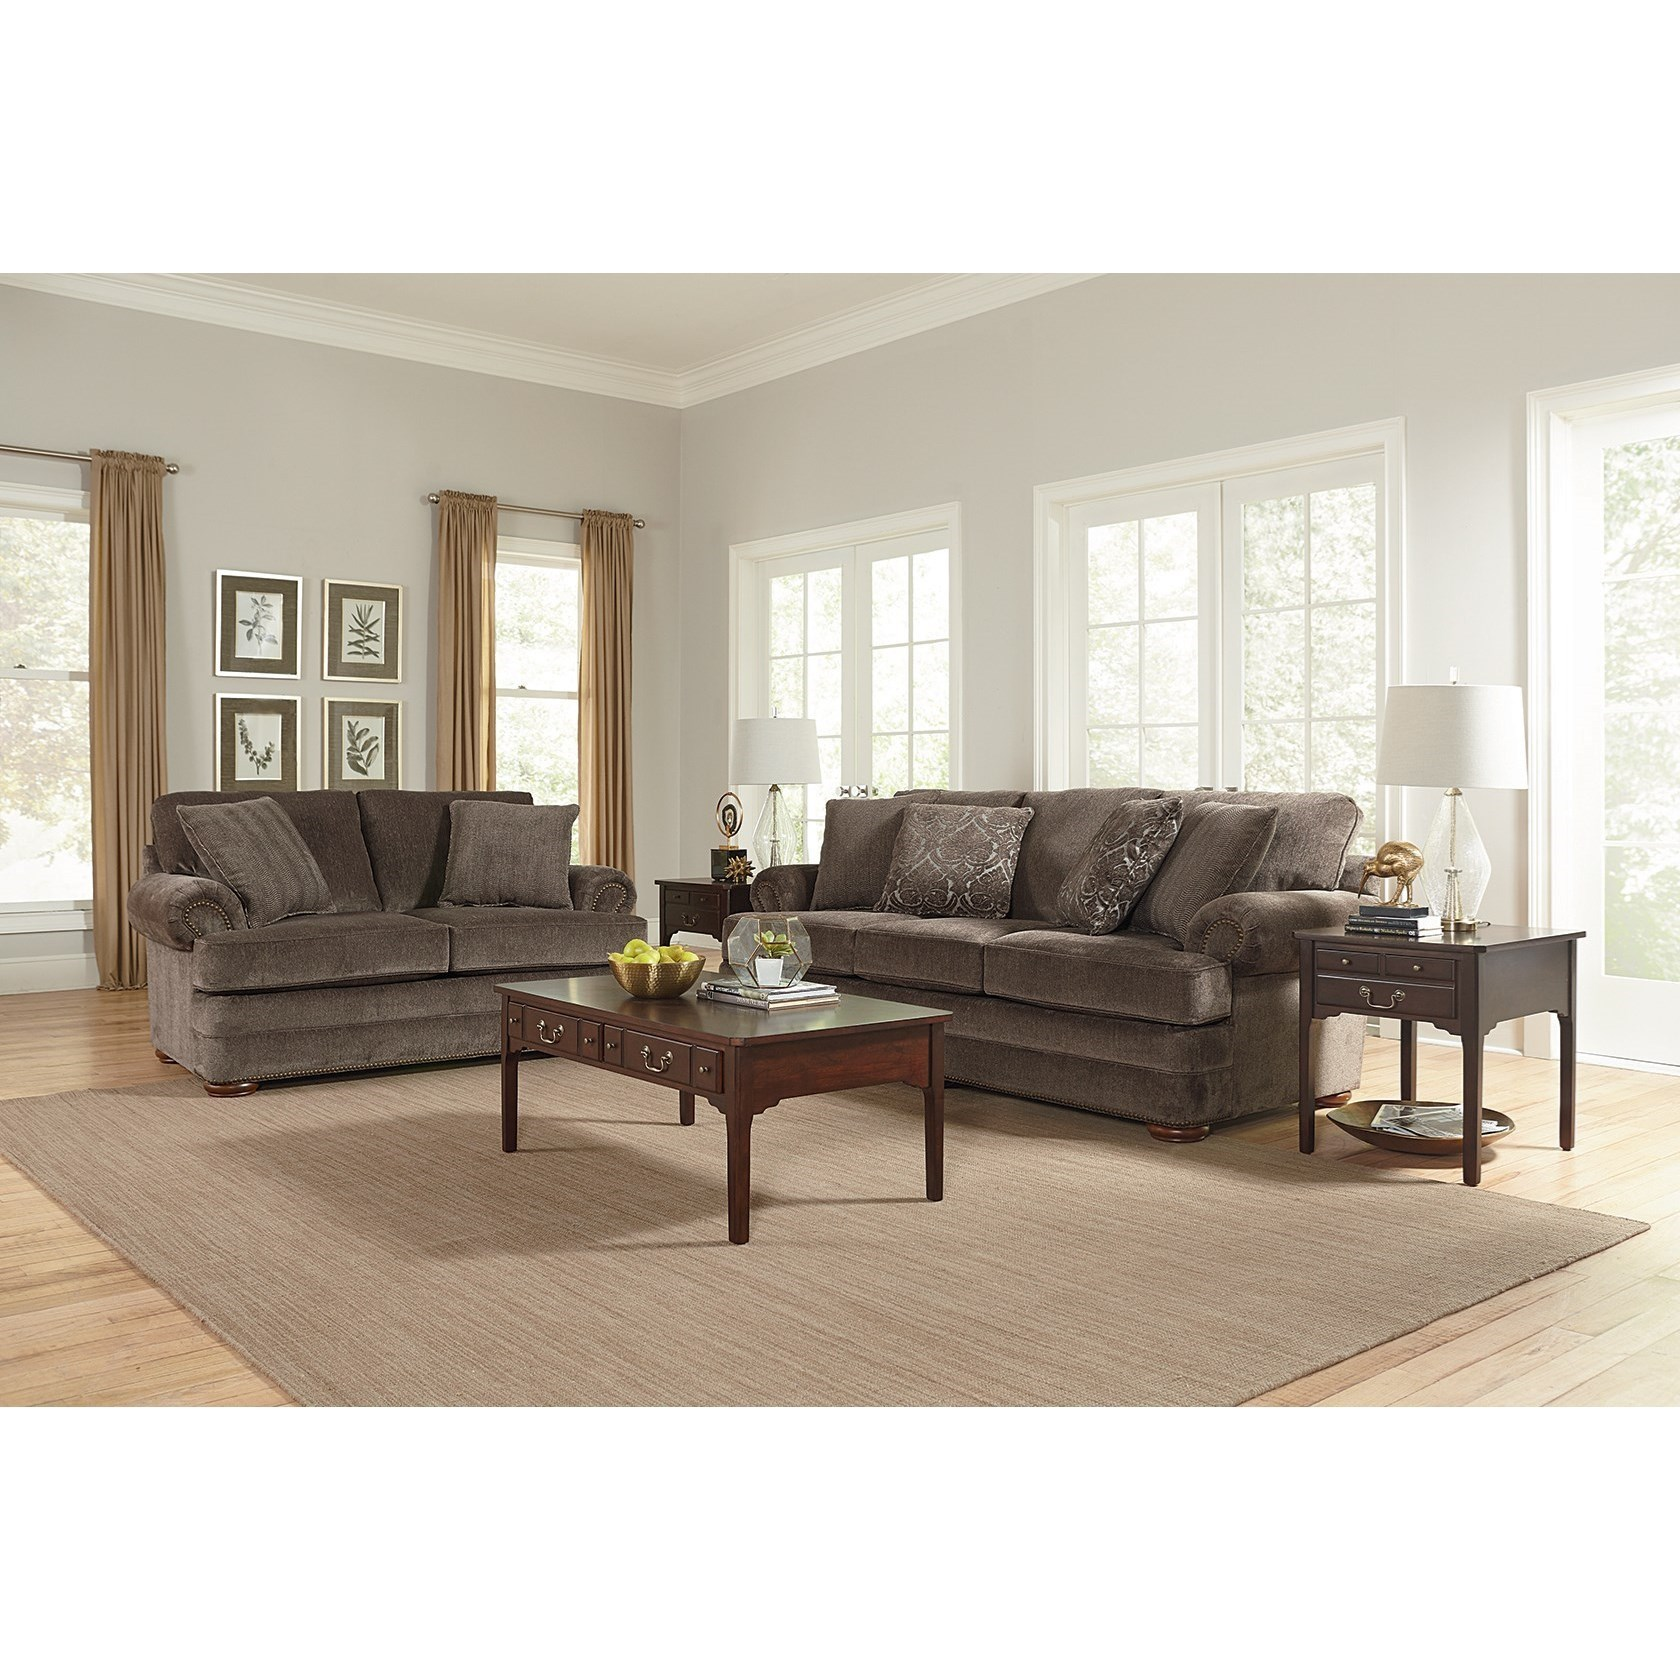 ... England KnoxSofa With Nailhead Trim